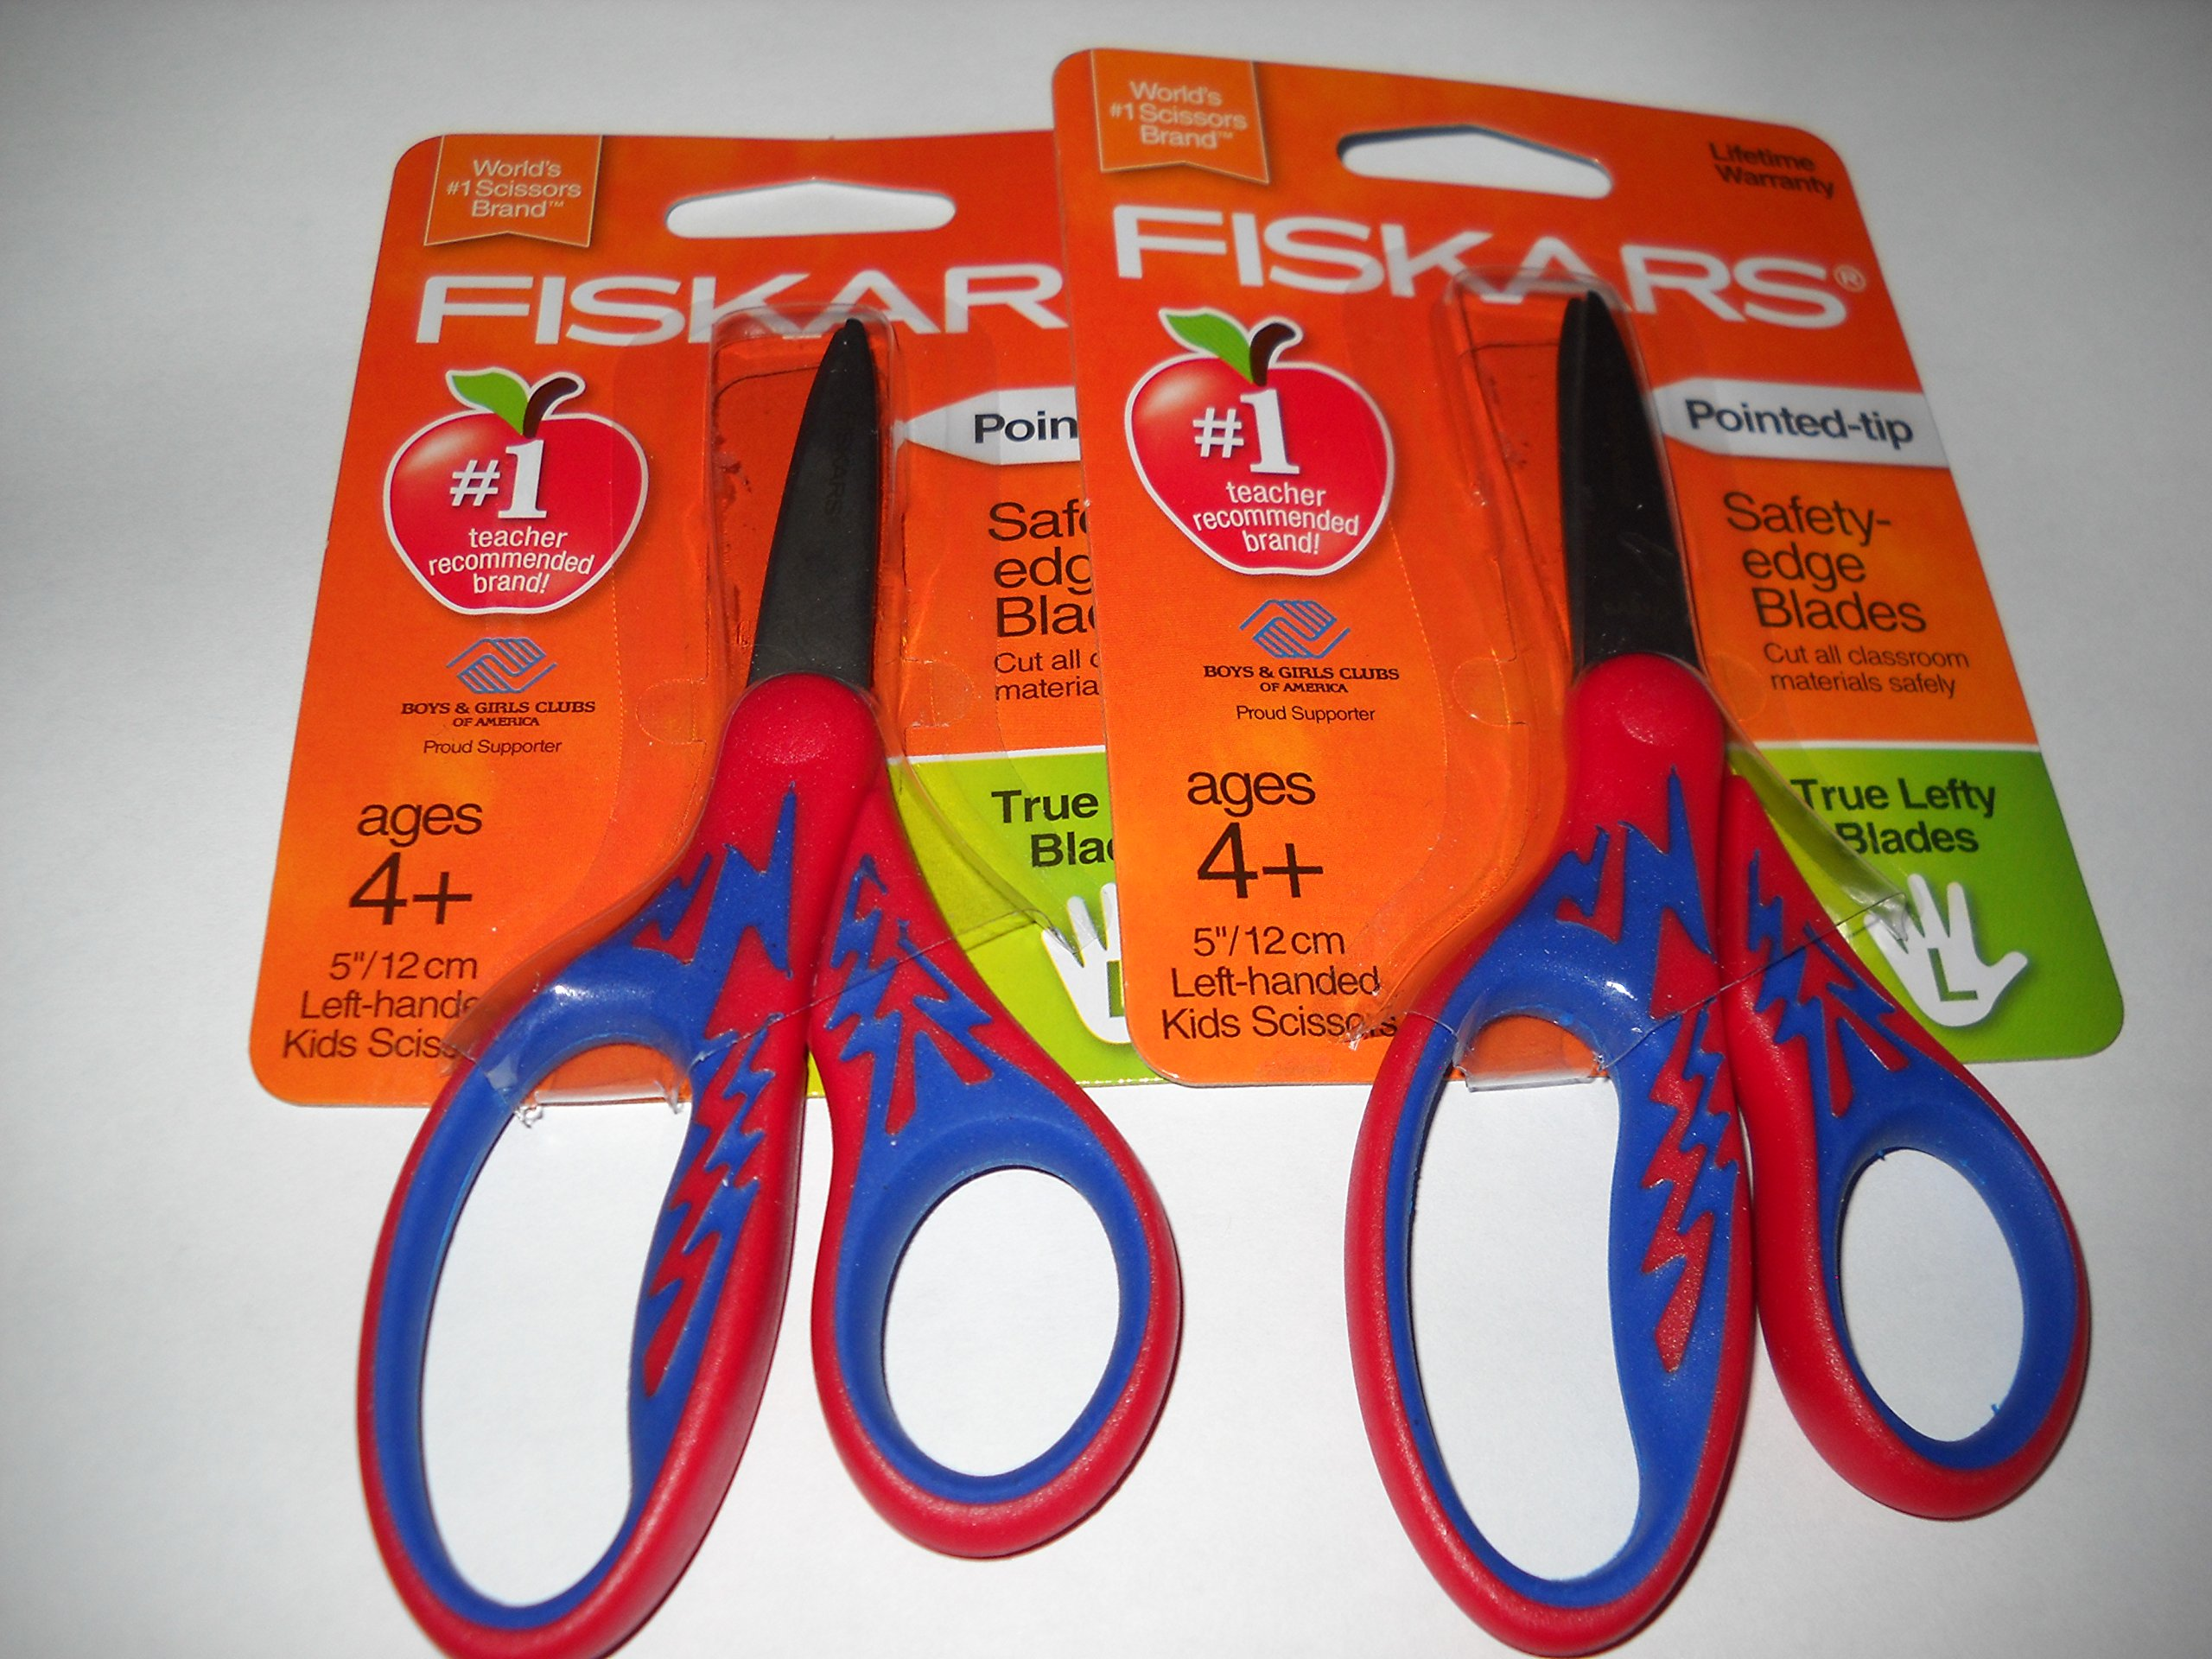 Fiskars 5'' Kid Scissors Left-Handed Pointed-Tip, 2 Pack - Assorted color